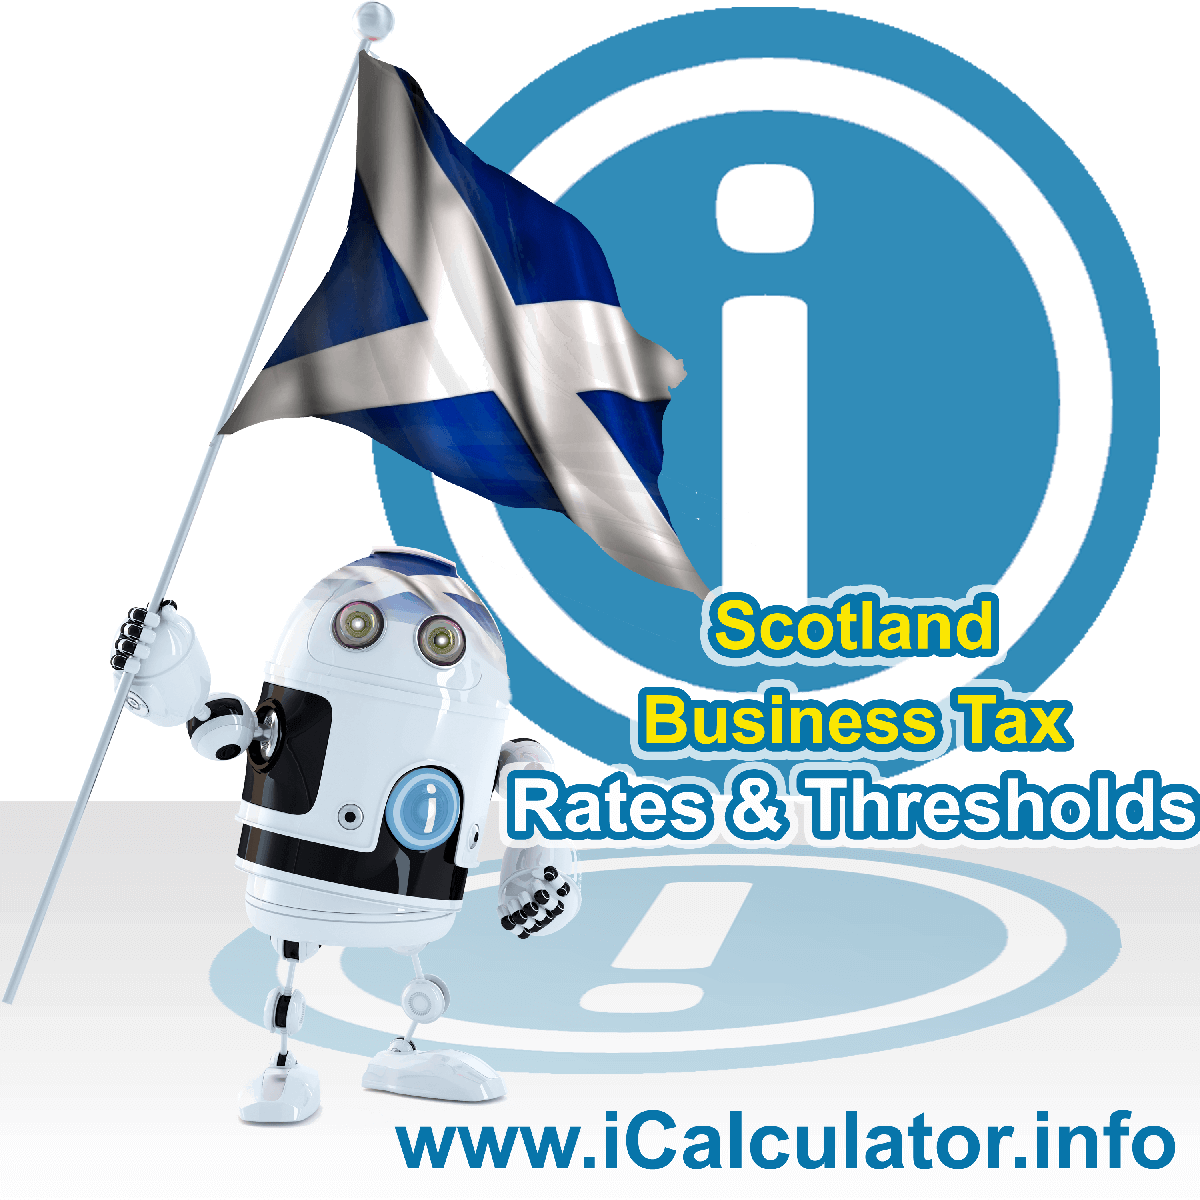 Scotland Corporation Tax Rates in 2010. This image shows the Scotland flag and information relating to the corporation tax formula for the Scotland Corporation Tax Calculator in 2010